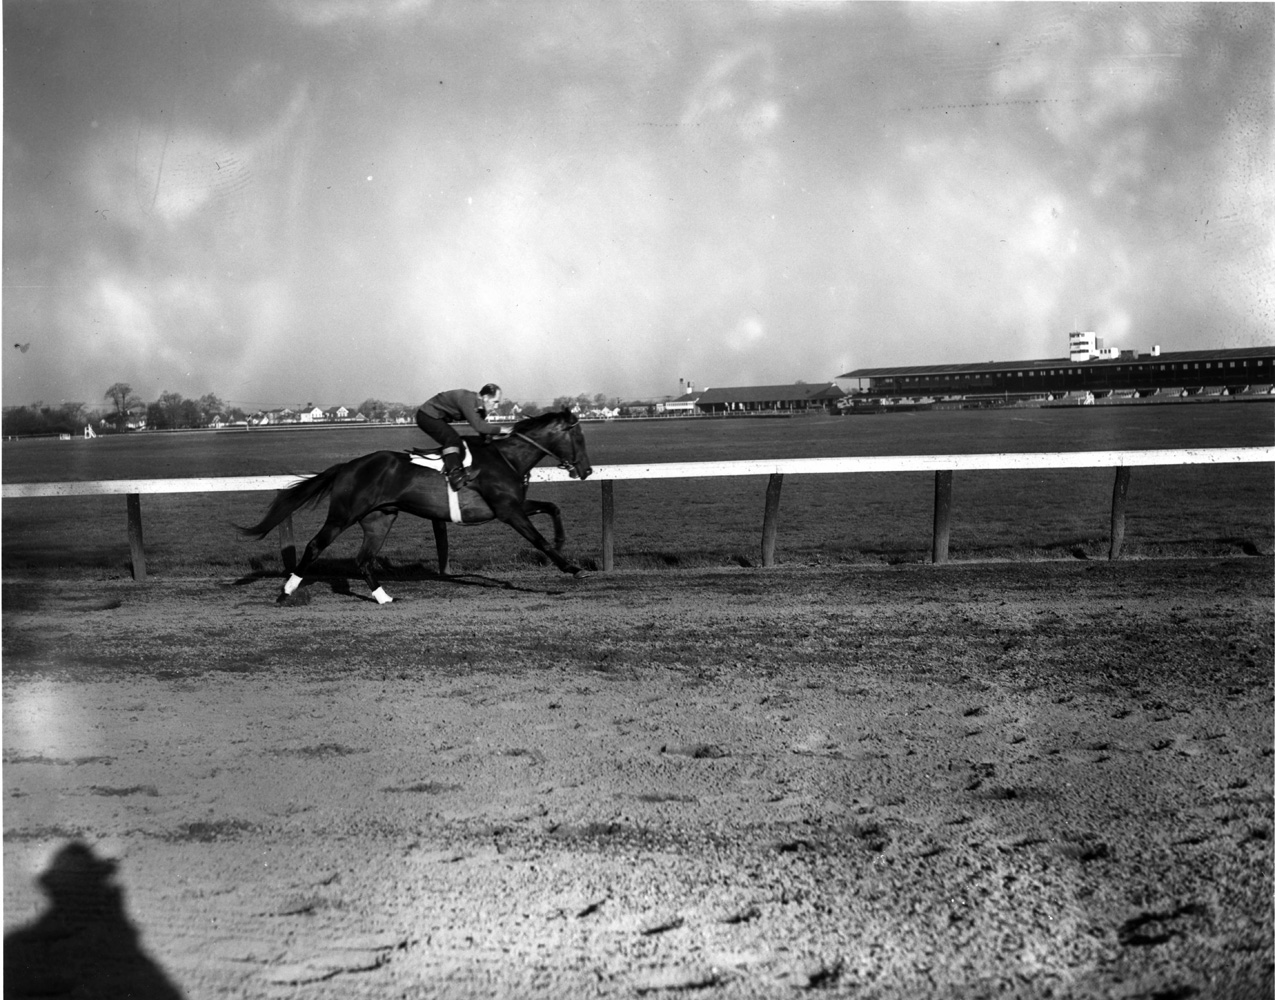 Coaltown working out at Jamaica Racetrack, April 1949 (Keeneland Library Morgan Collection/Museum Collection)